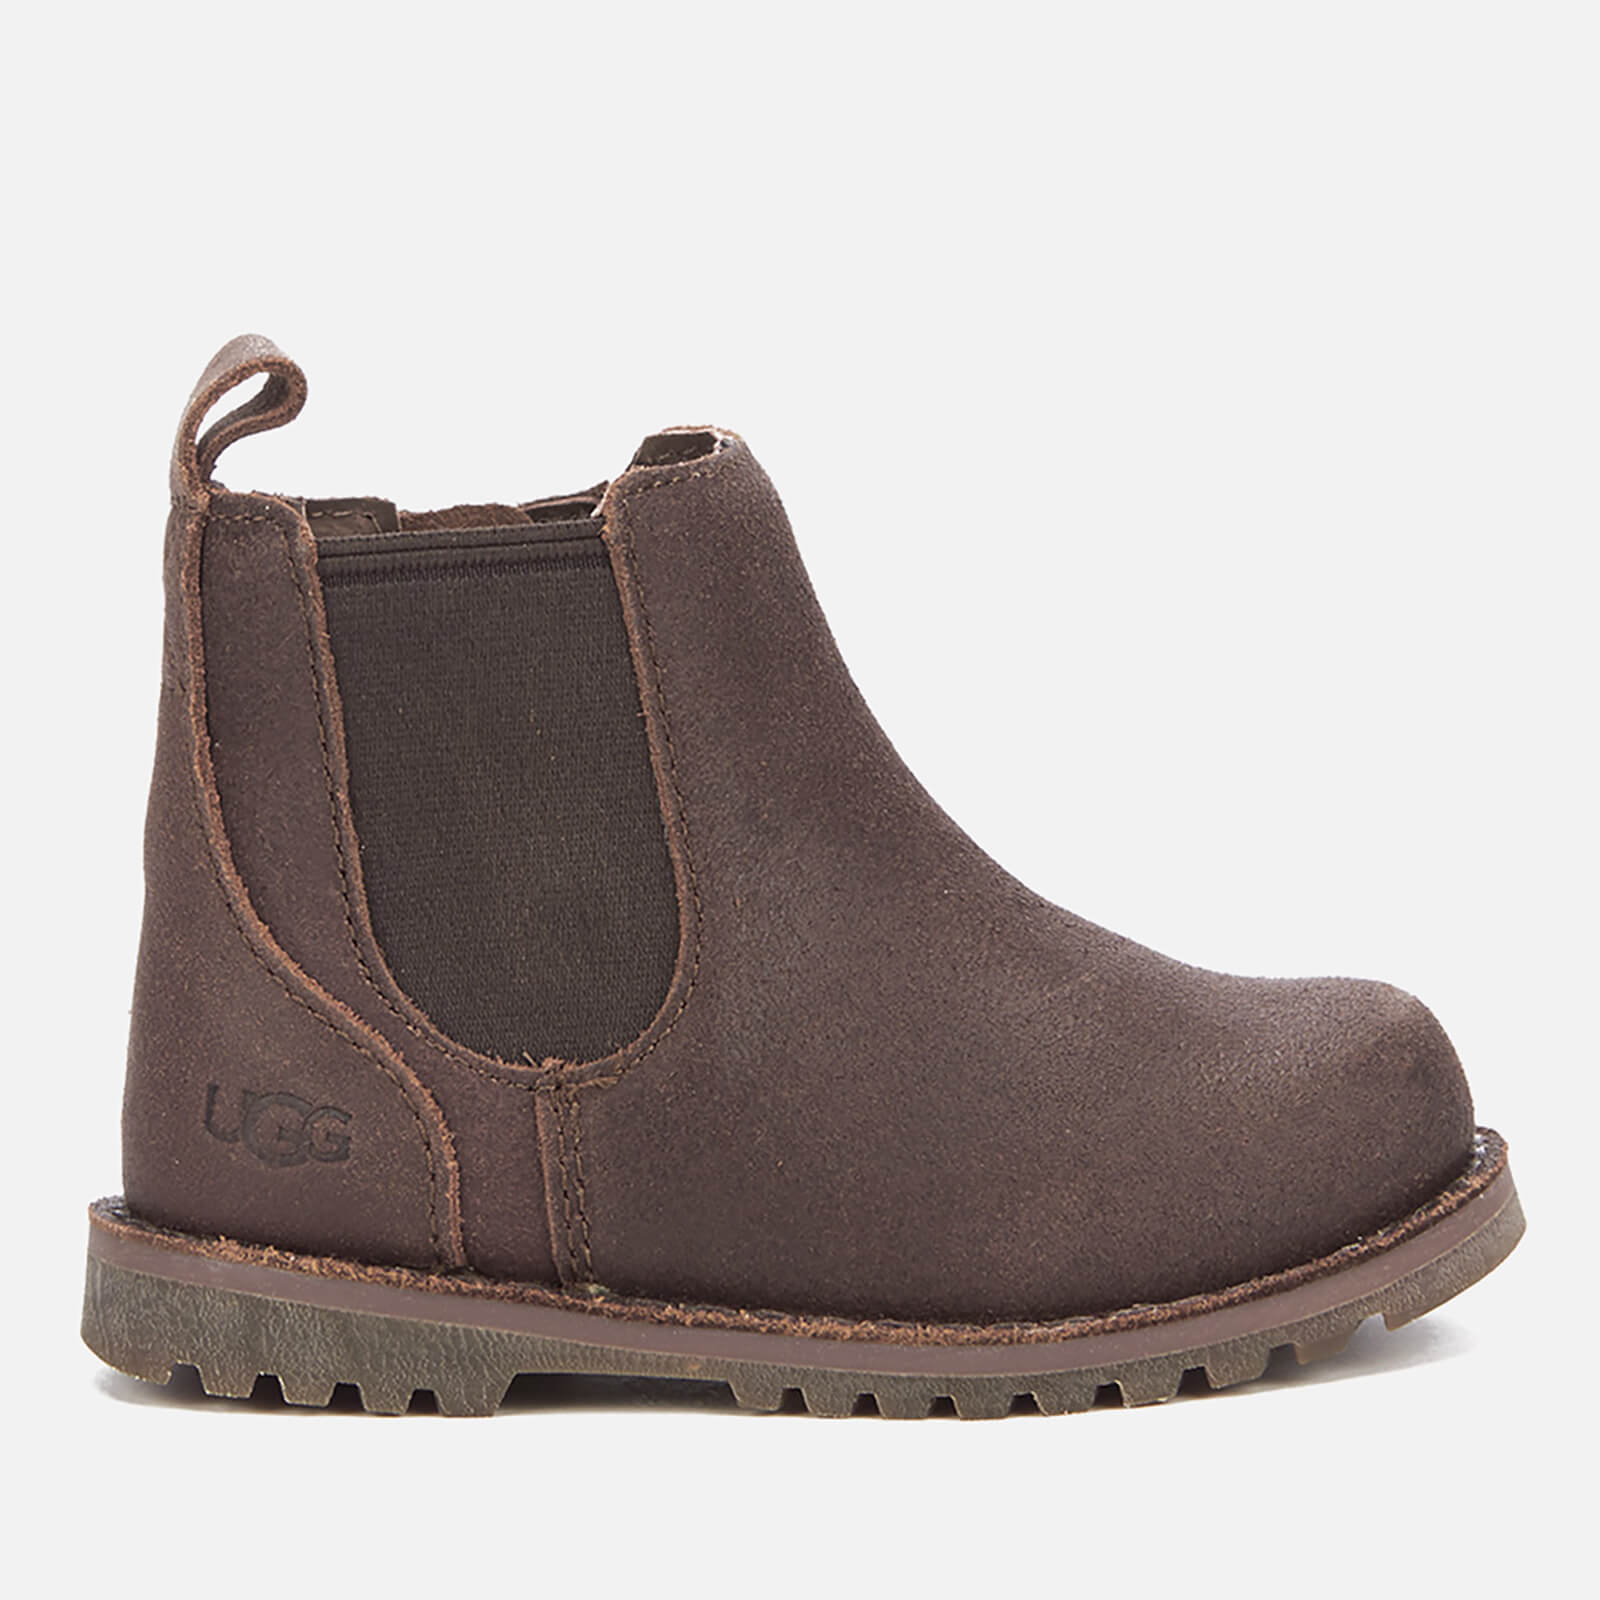 0fe2d9b4fea UGG Toddlers' Callum Suede Chelsea Boots - Chocolate